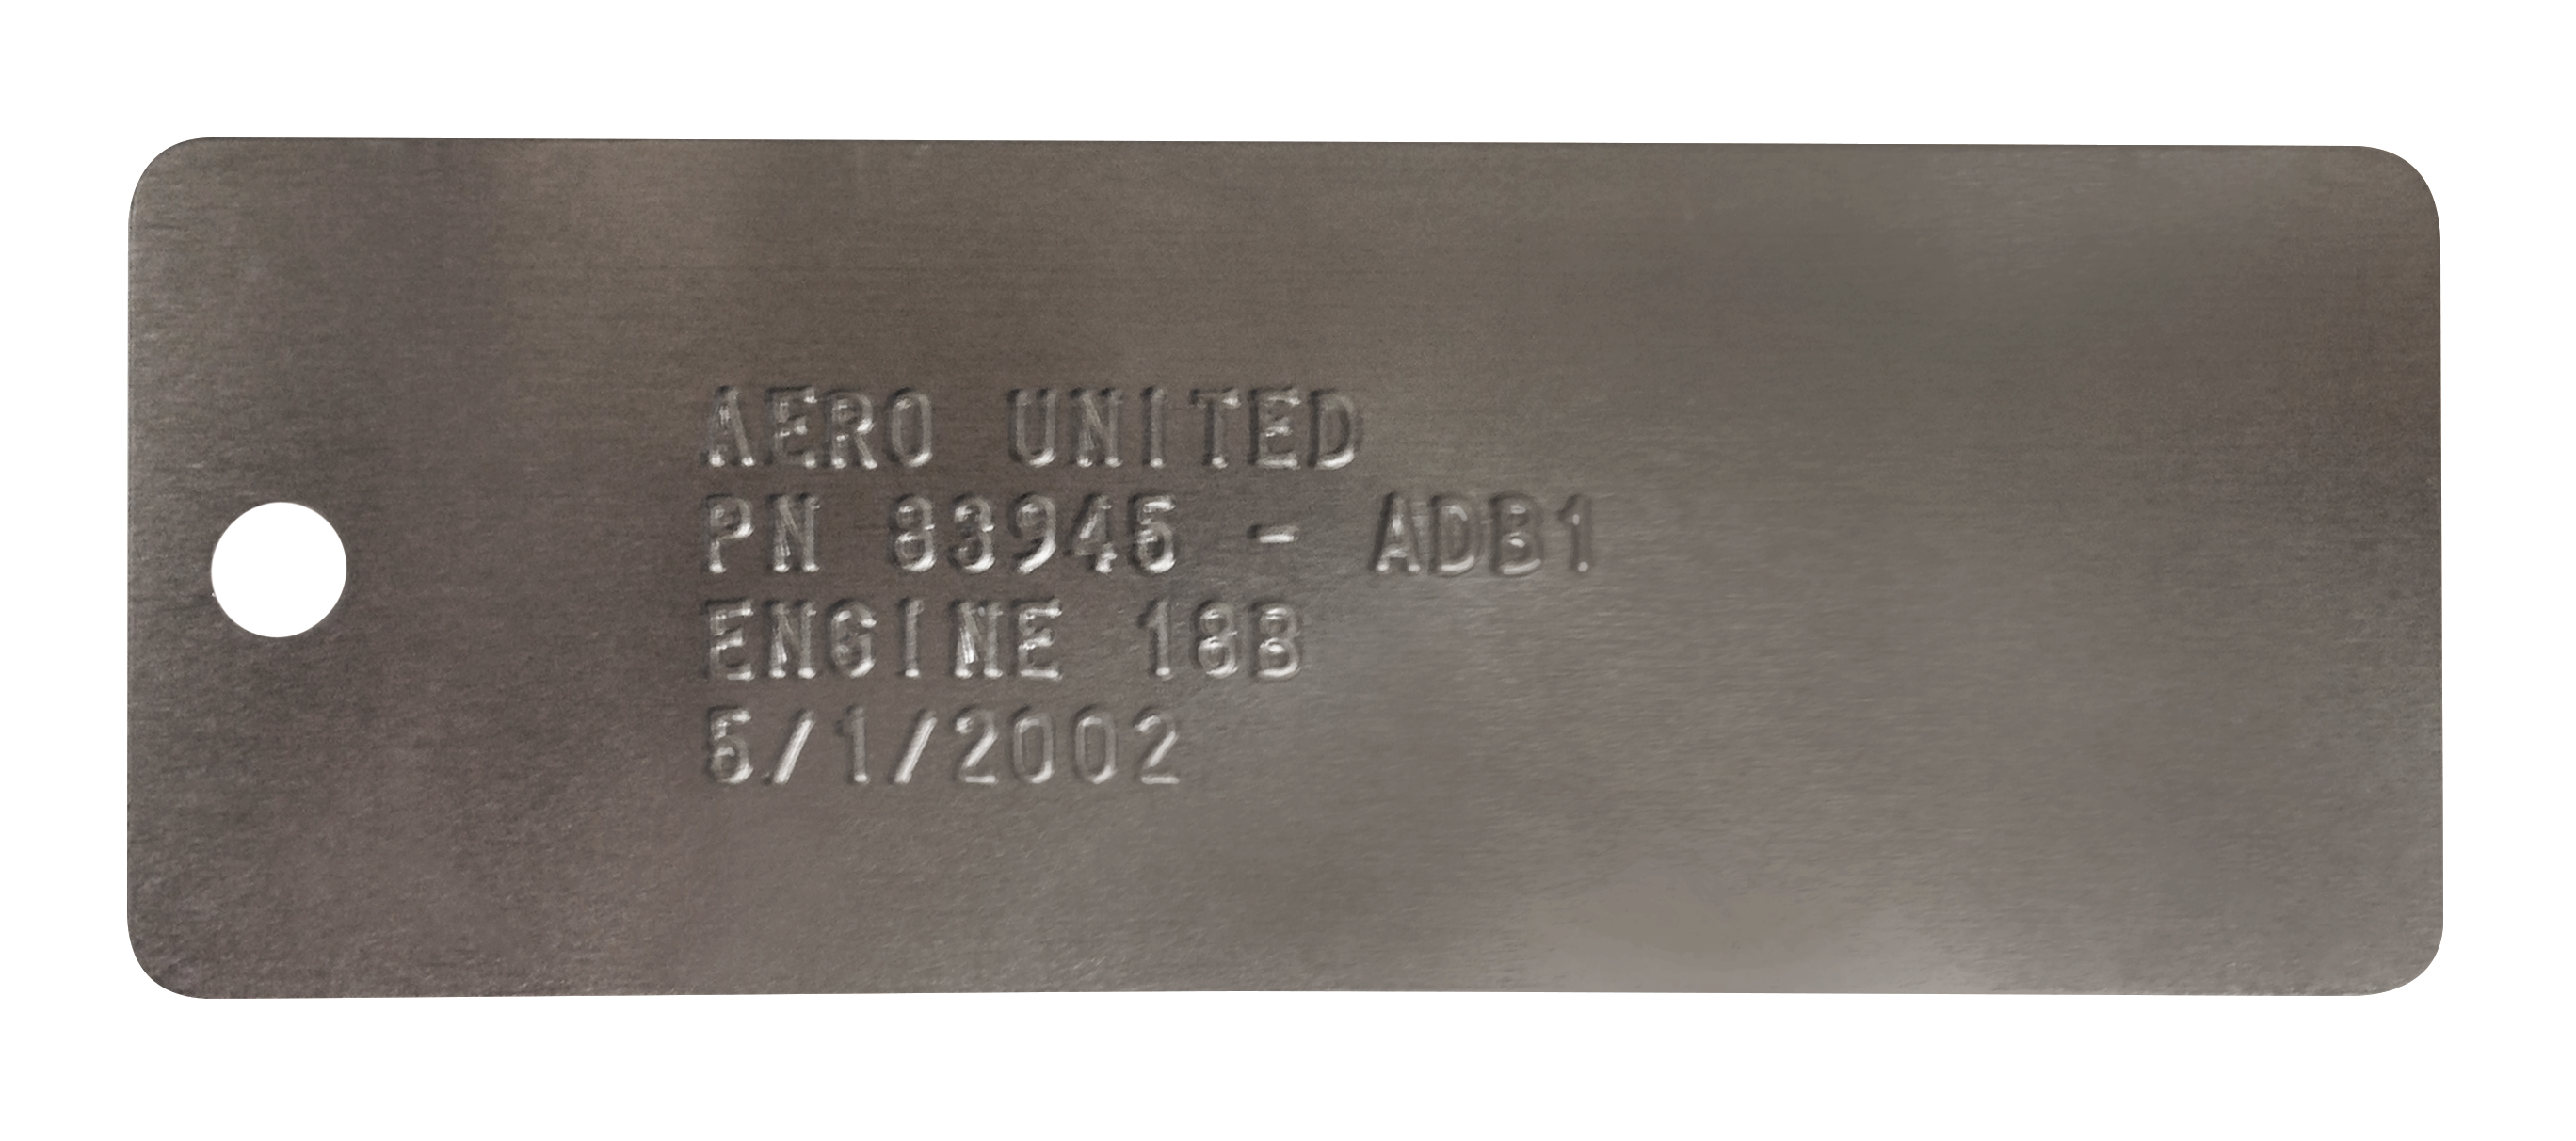 embossed metal tag